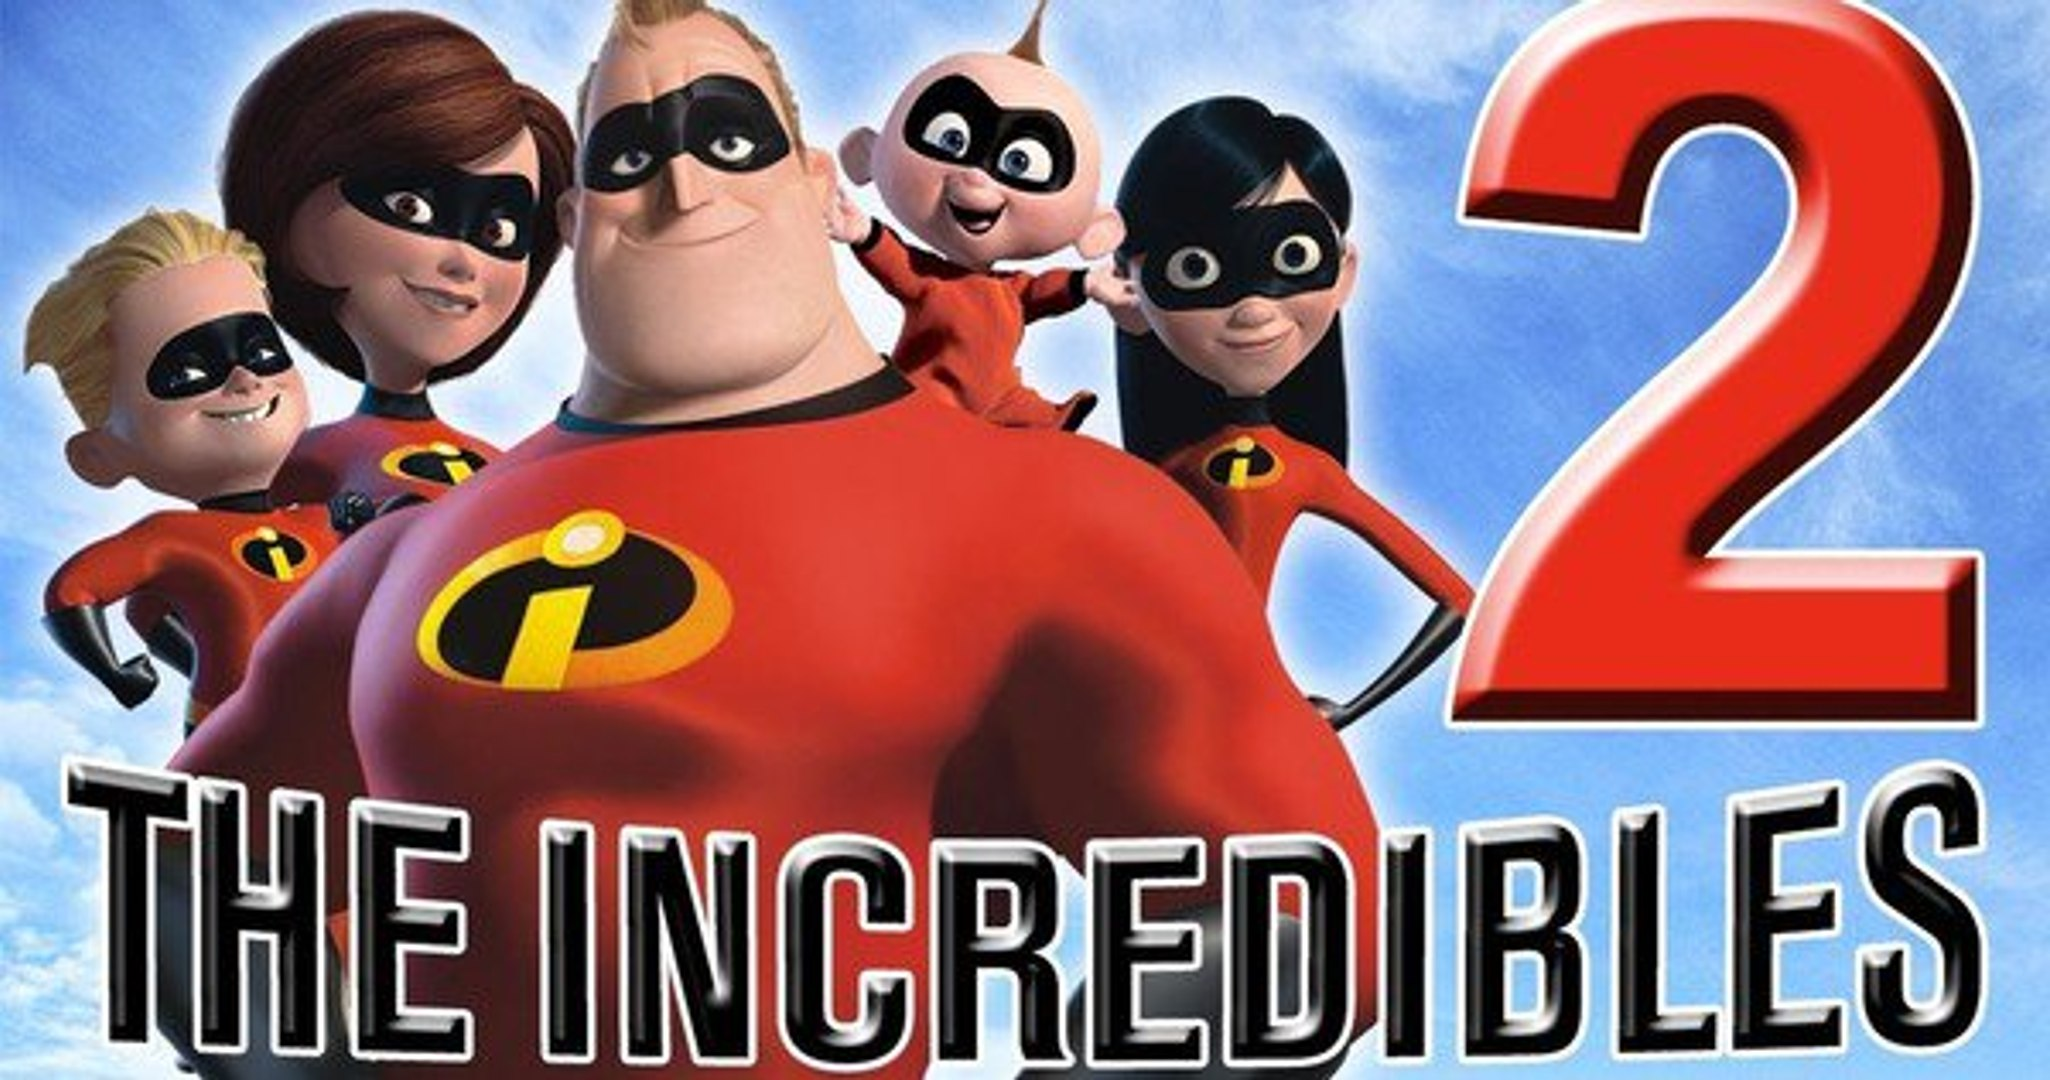 Incredibles 2 Full 4k Movie Hd 2018 Video Dailymotion